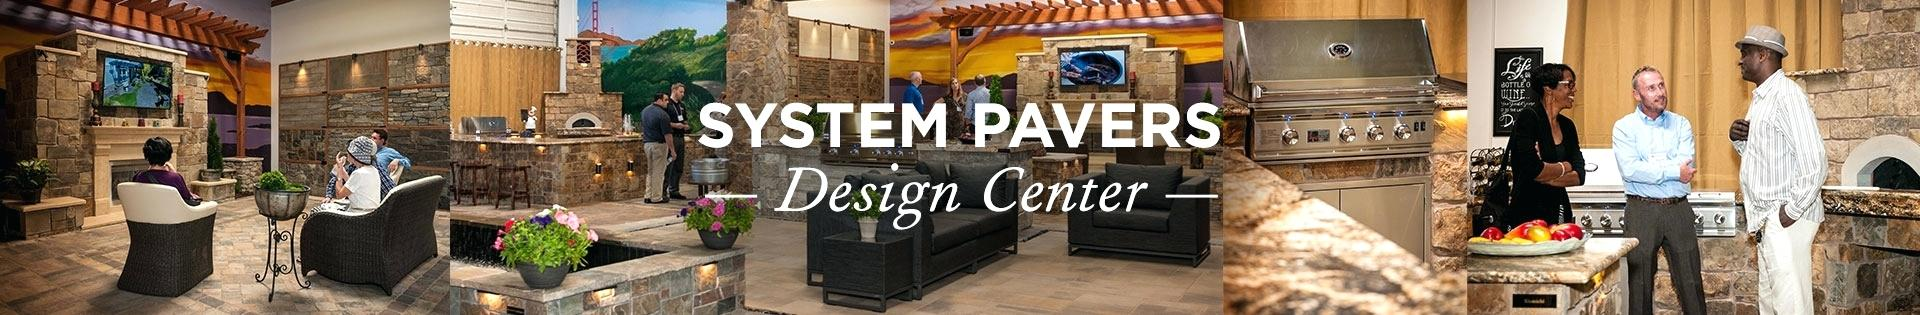 system pavers union city location